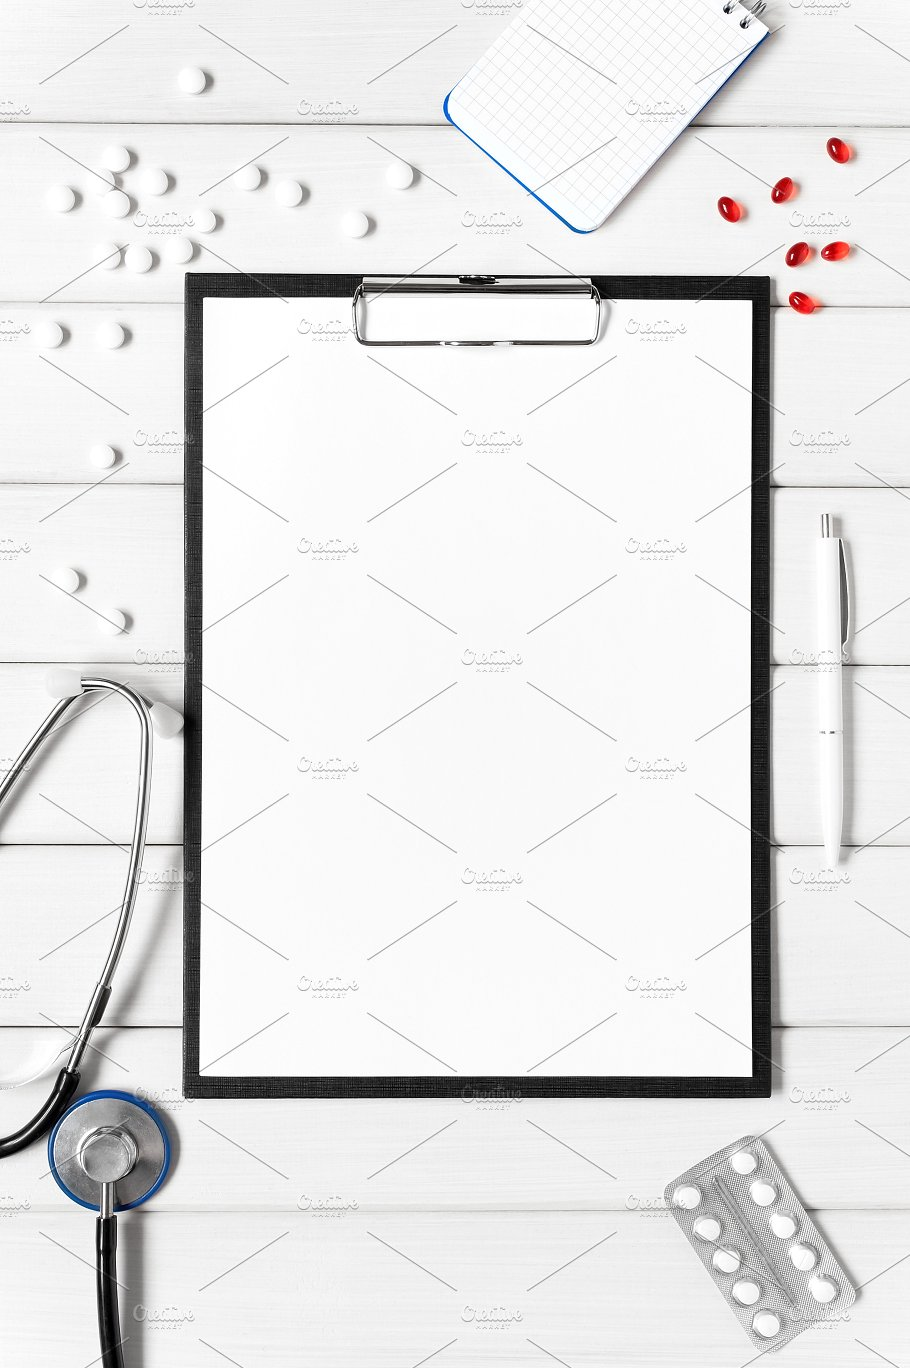 Clipboard and Medical Tools Mockup withCapsules PSD Design template